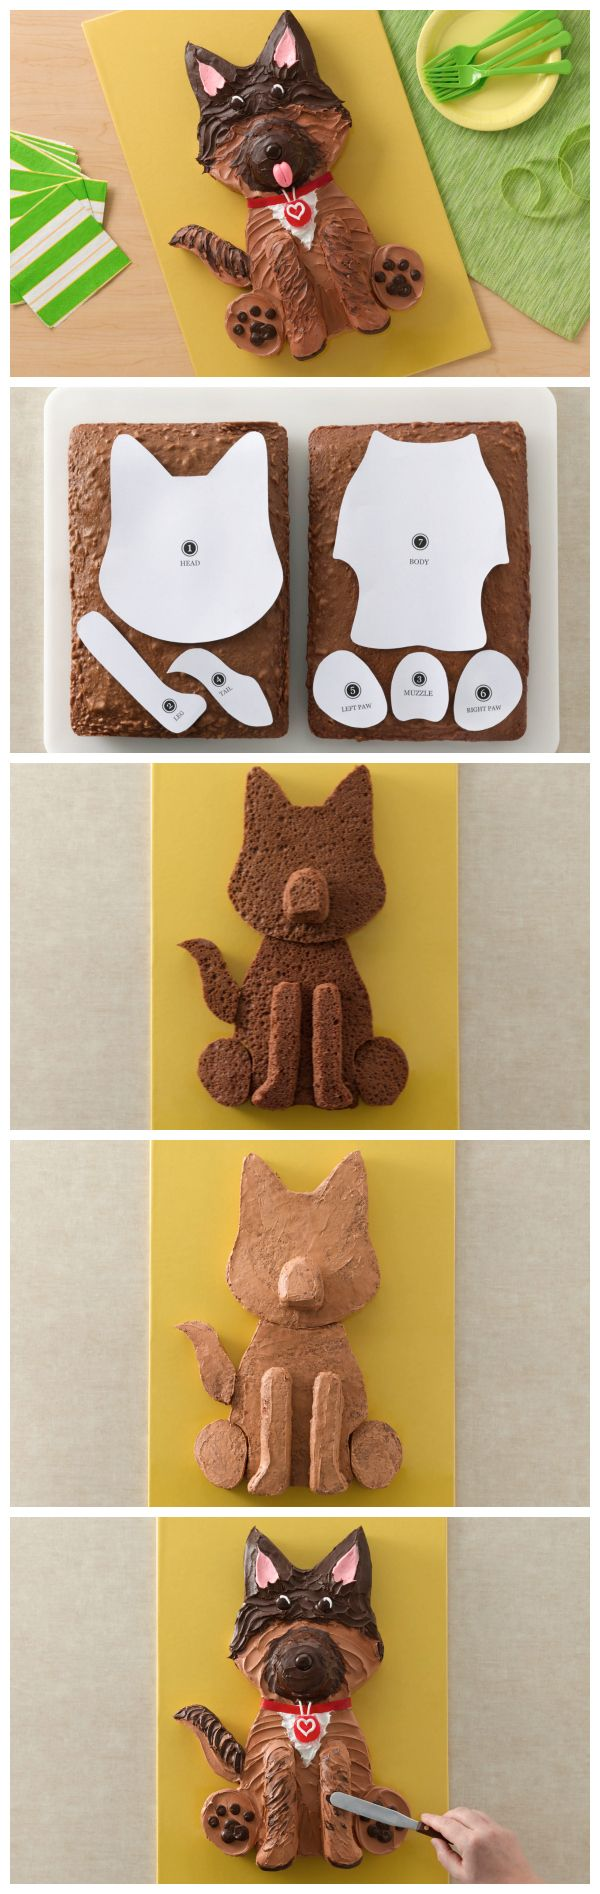 German Shepherd Dog Cake with template! Just in case anyone wants to make this for my birthday ; )